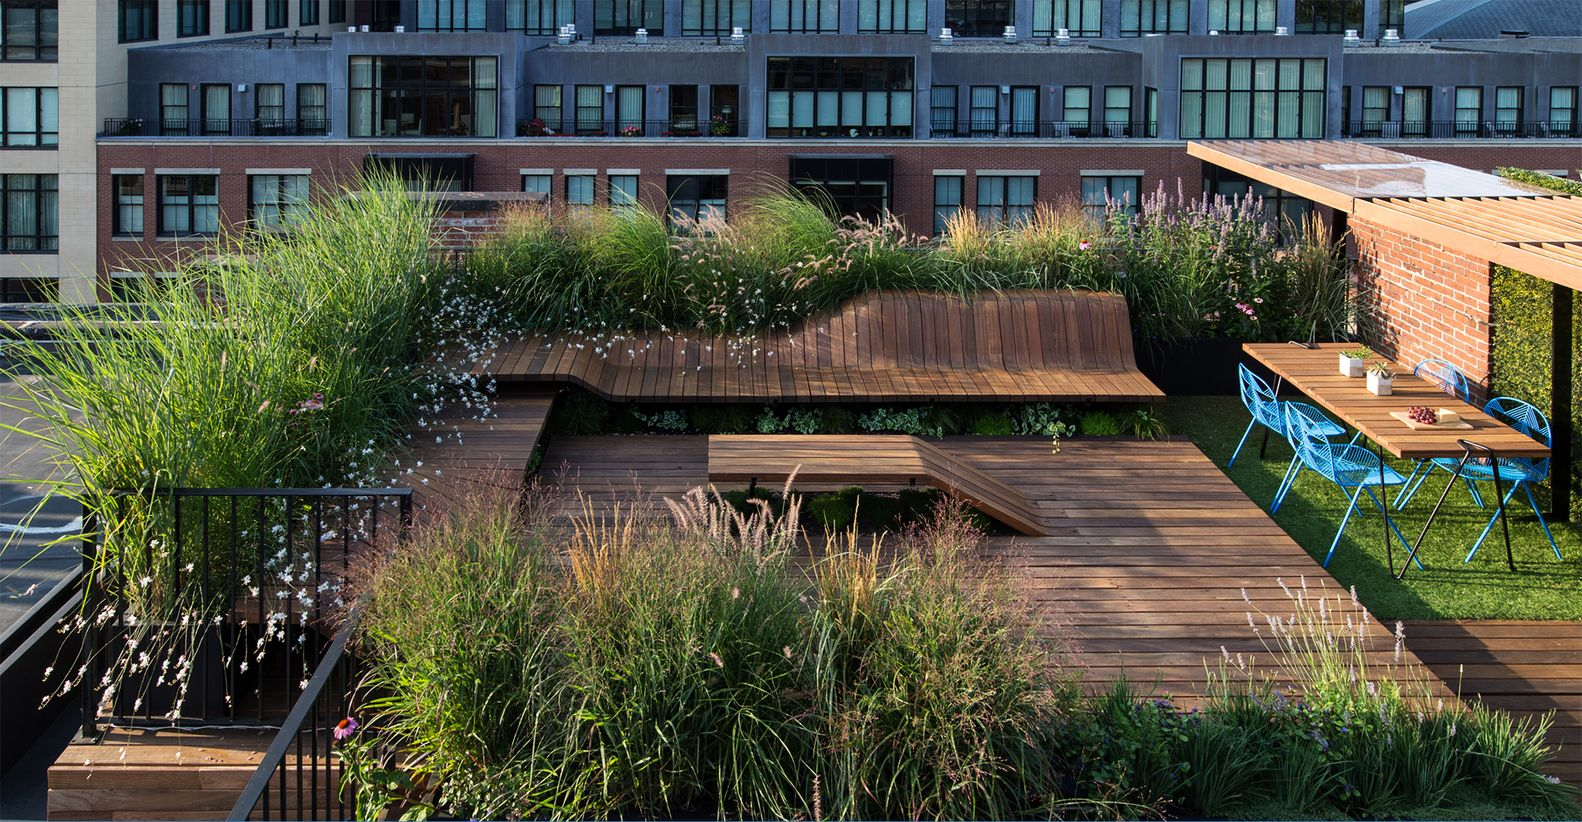 Gallery Of Wooden Living-Roof Built With Japanese Joinery Techniques Uses Zero Screws - 1 | Urban Garden Design, Rooftop Garden, Urban Garden